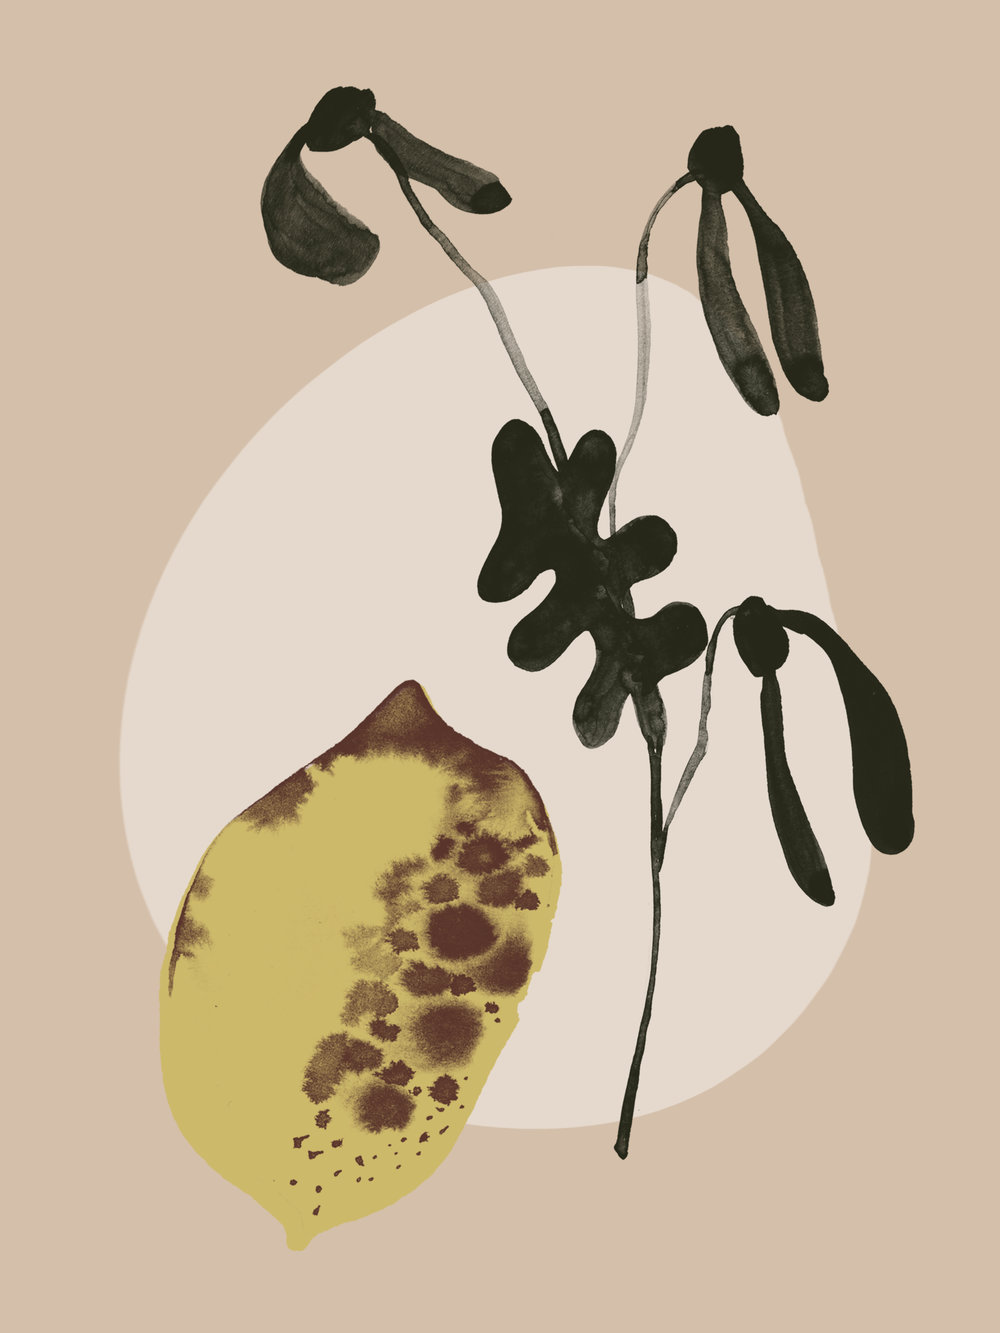 Lemon   Ink and Photoshop  2018,  Fruit Series